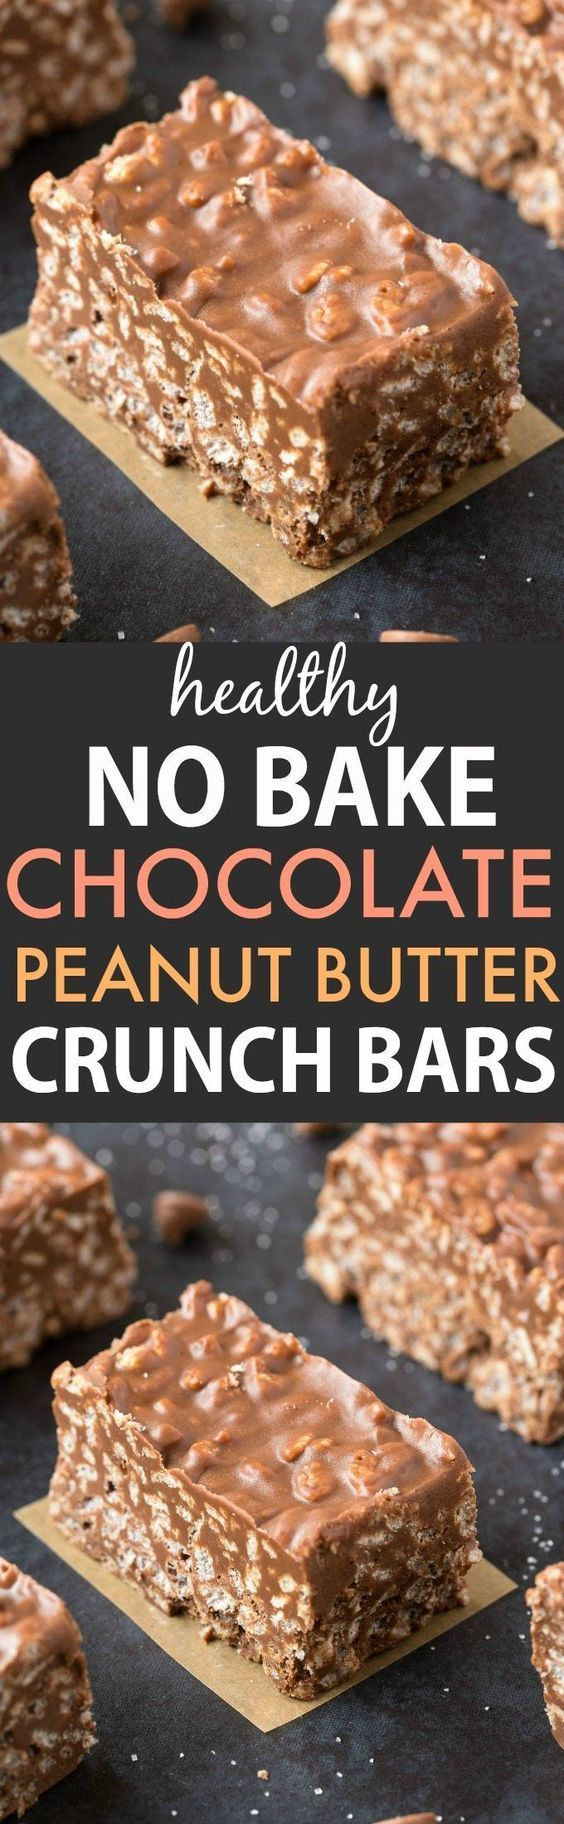 Healthy No Bake Chocolate Peanut Butter Crunch Bars | Pechenuhi